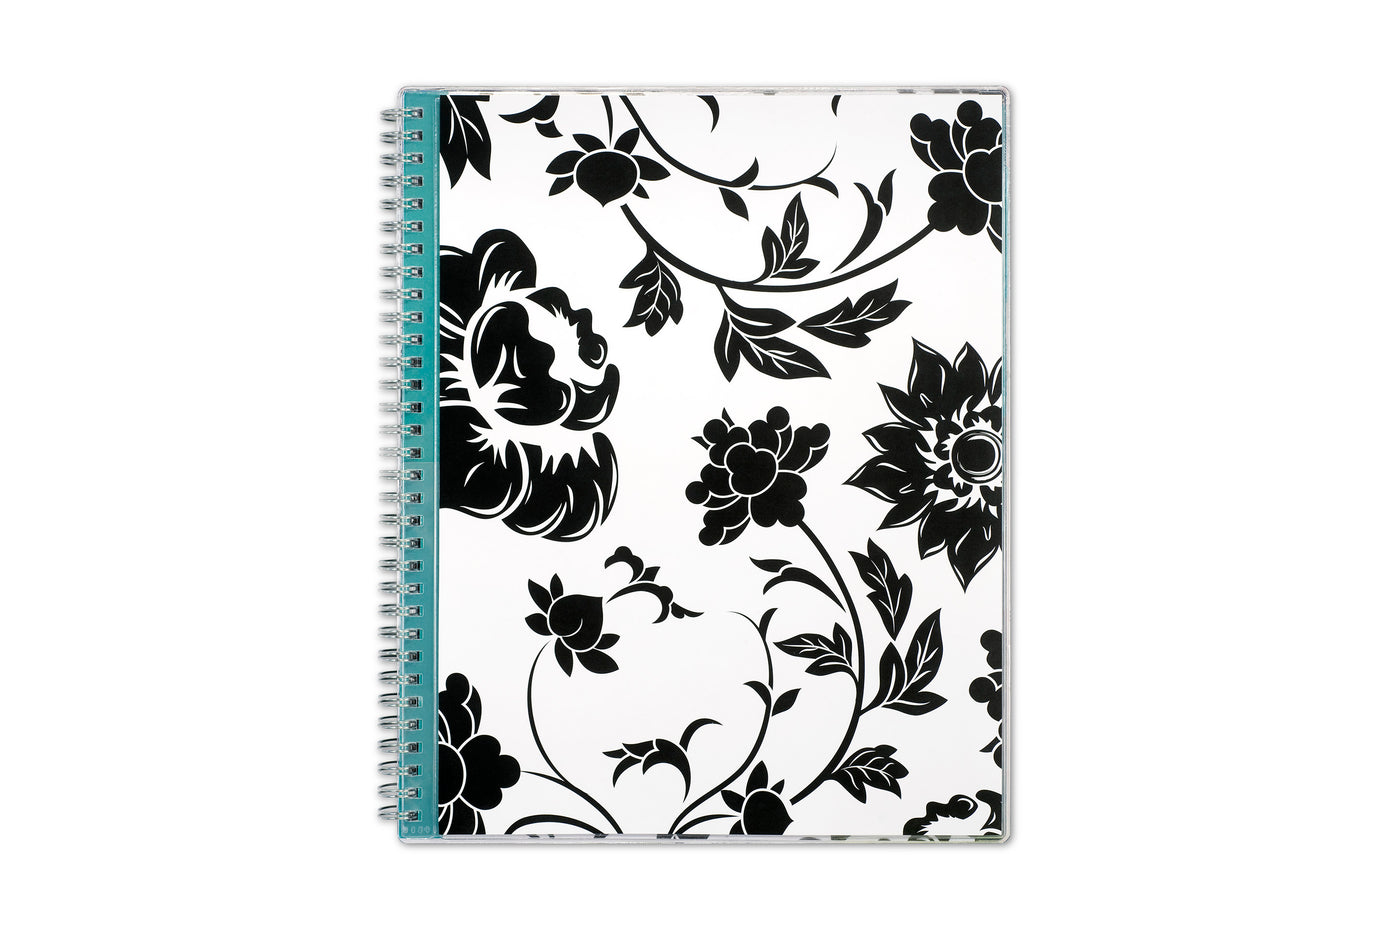 2021 planner by blue sky featuring black flowers, white background, teal interior accents, and silver twin wire-o binding  in 8.5x11 size